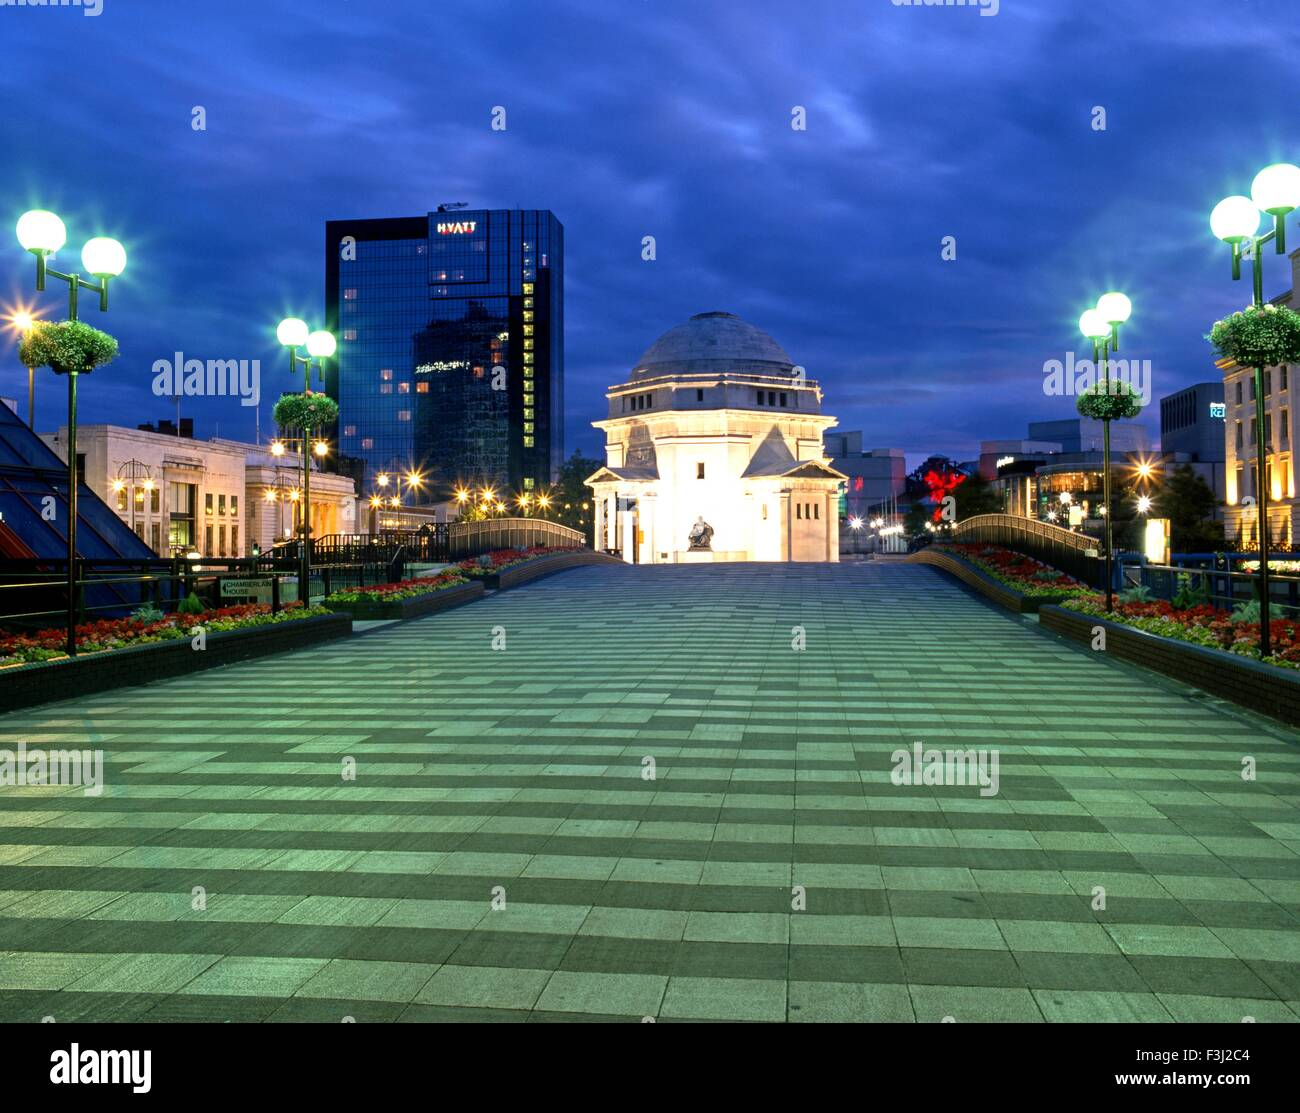 View looking towards the Hall of Memory in the Hyatt Hotel at night, Centenary Square, Birmingham, West Midlands, Stock Photo